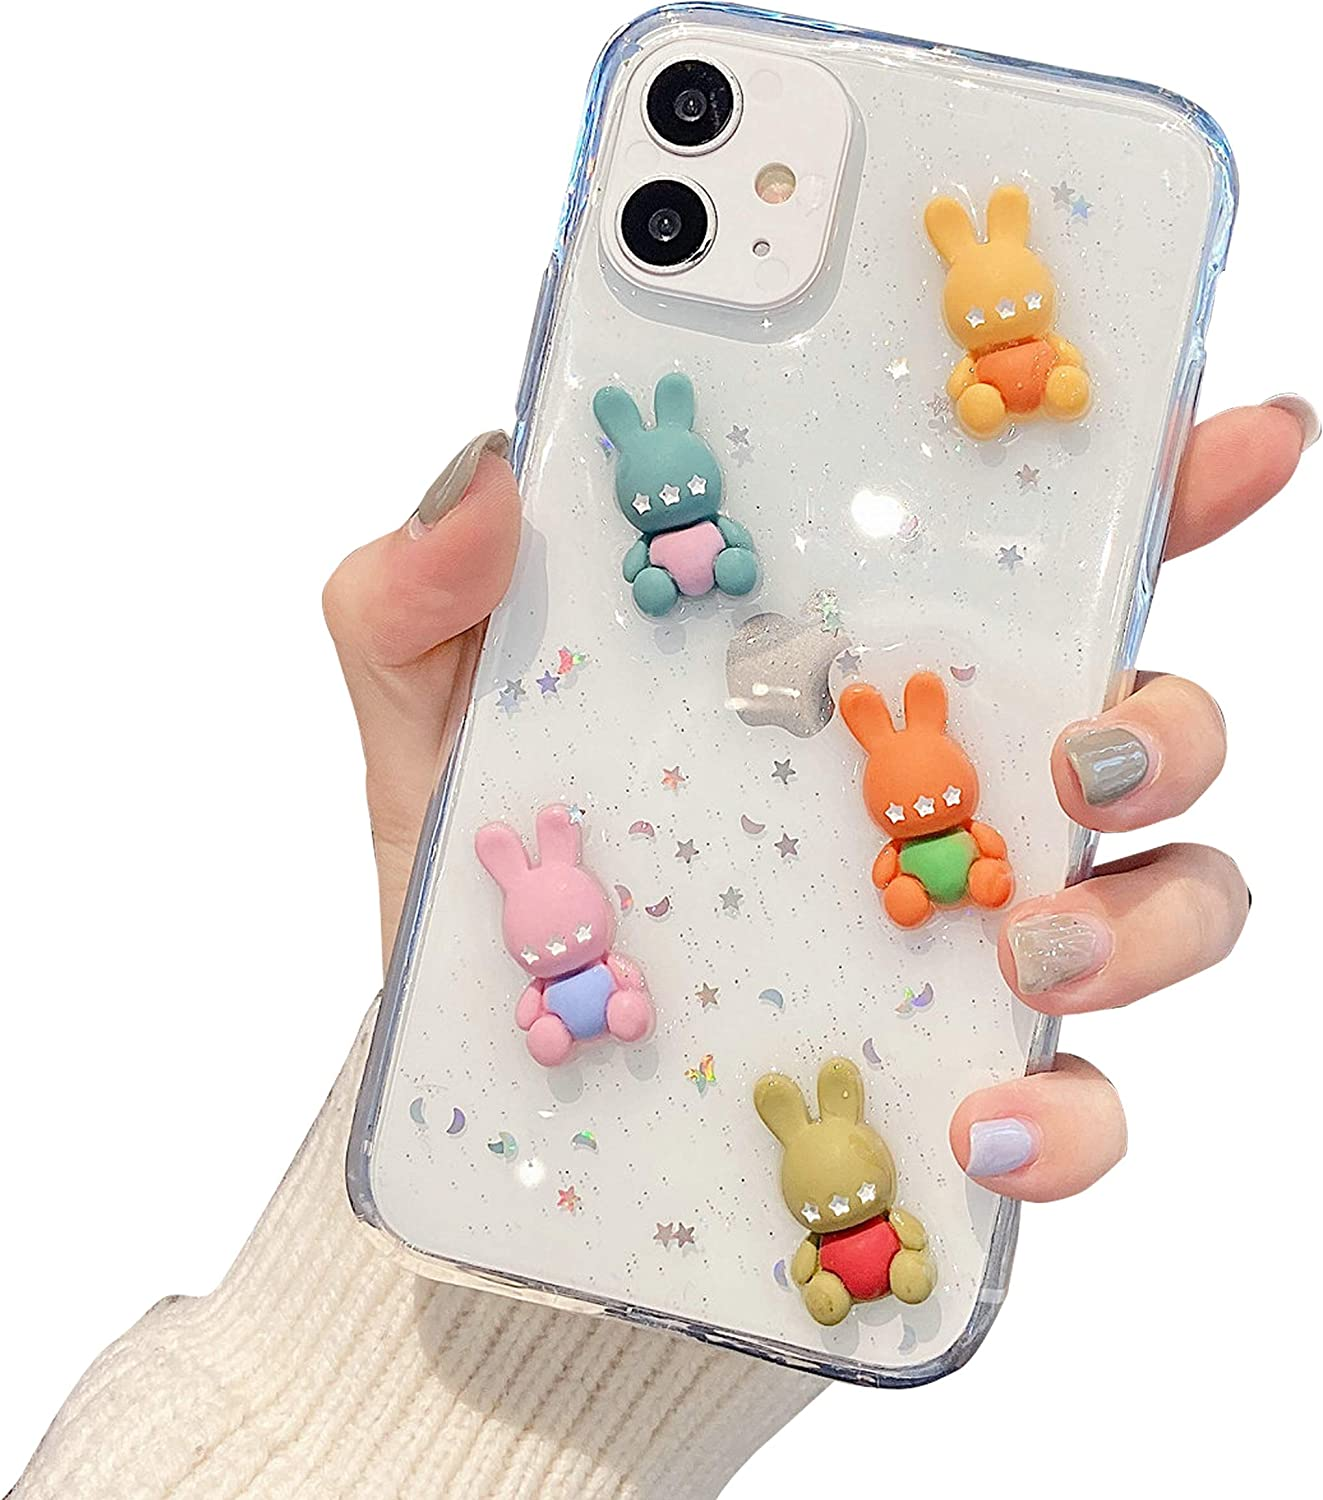 DOMIDO 3D Clear Case Compatible with iPhone 12/12 Pro Cute Cartoon Rabbits Funny Creative Ice Cream Cake Food Cover Girls Glitter Soft Rubber Case for iPhone 12/12 Pro(5 Bears)